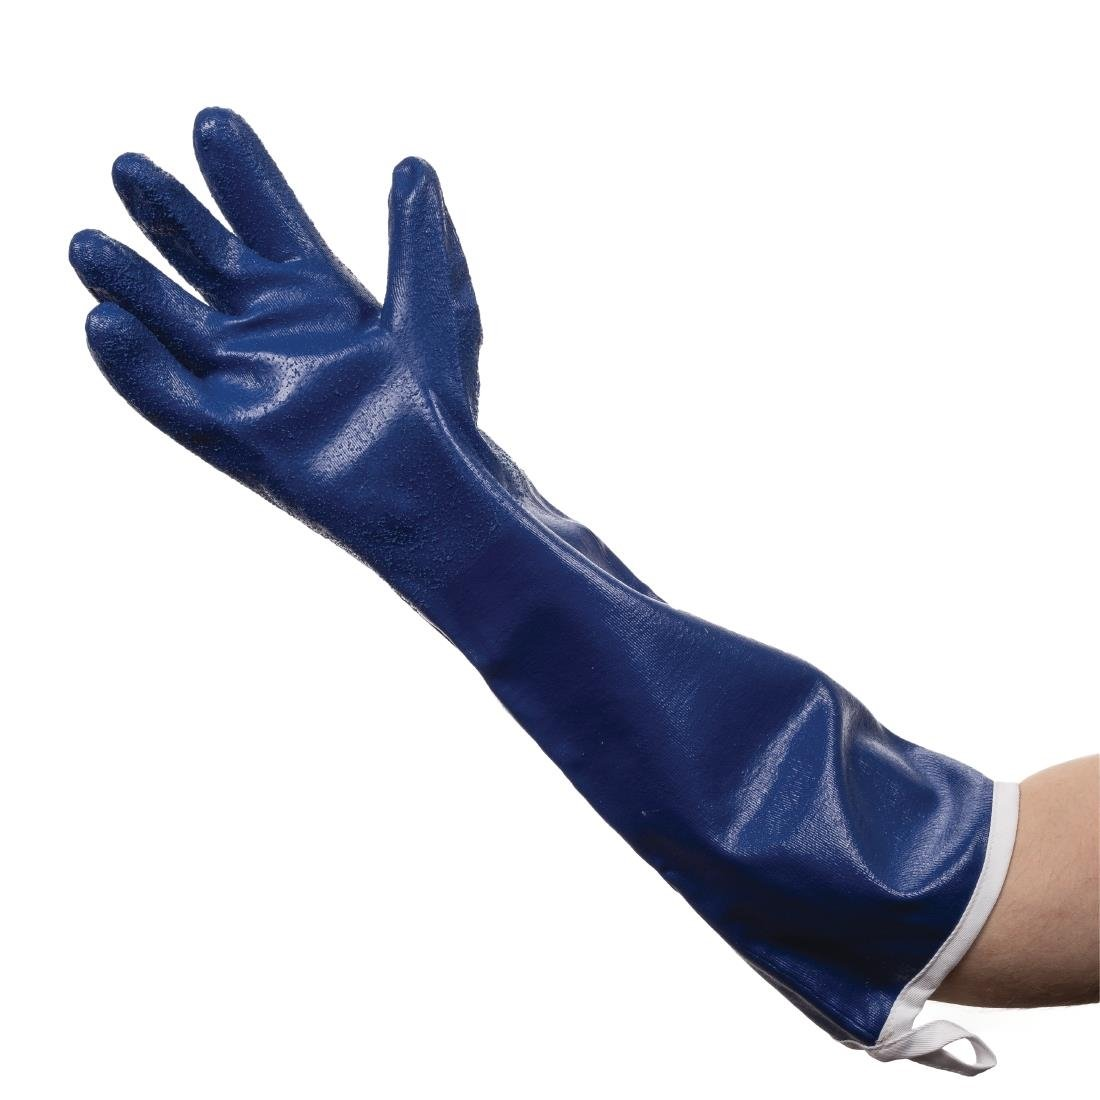 Tucker Safety 92204 Products Tucker SteamGlove Utility Glove, Nitrile, Cotton Lined, 20'', Large, Blue (Pack of 6)